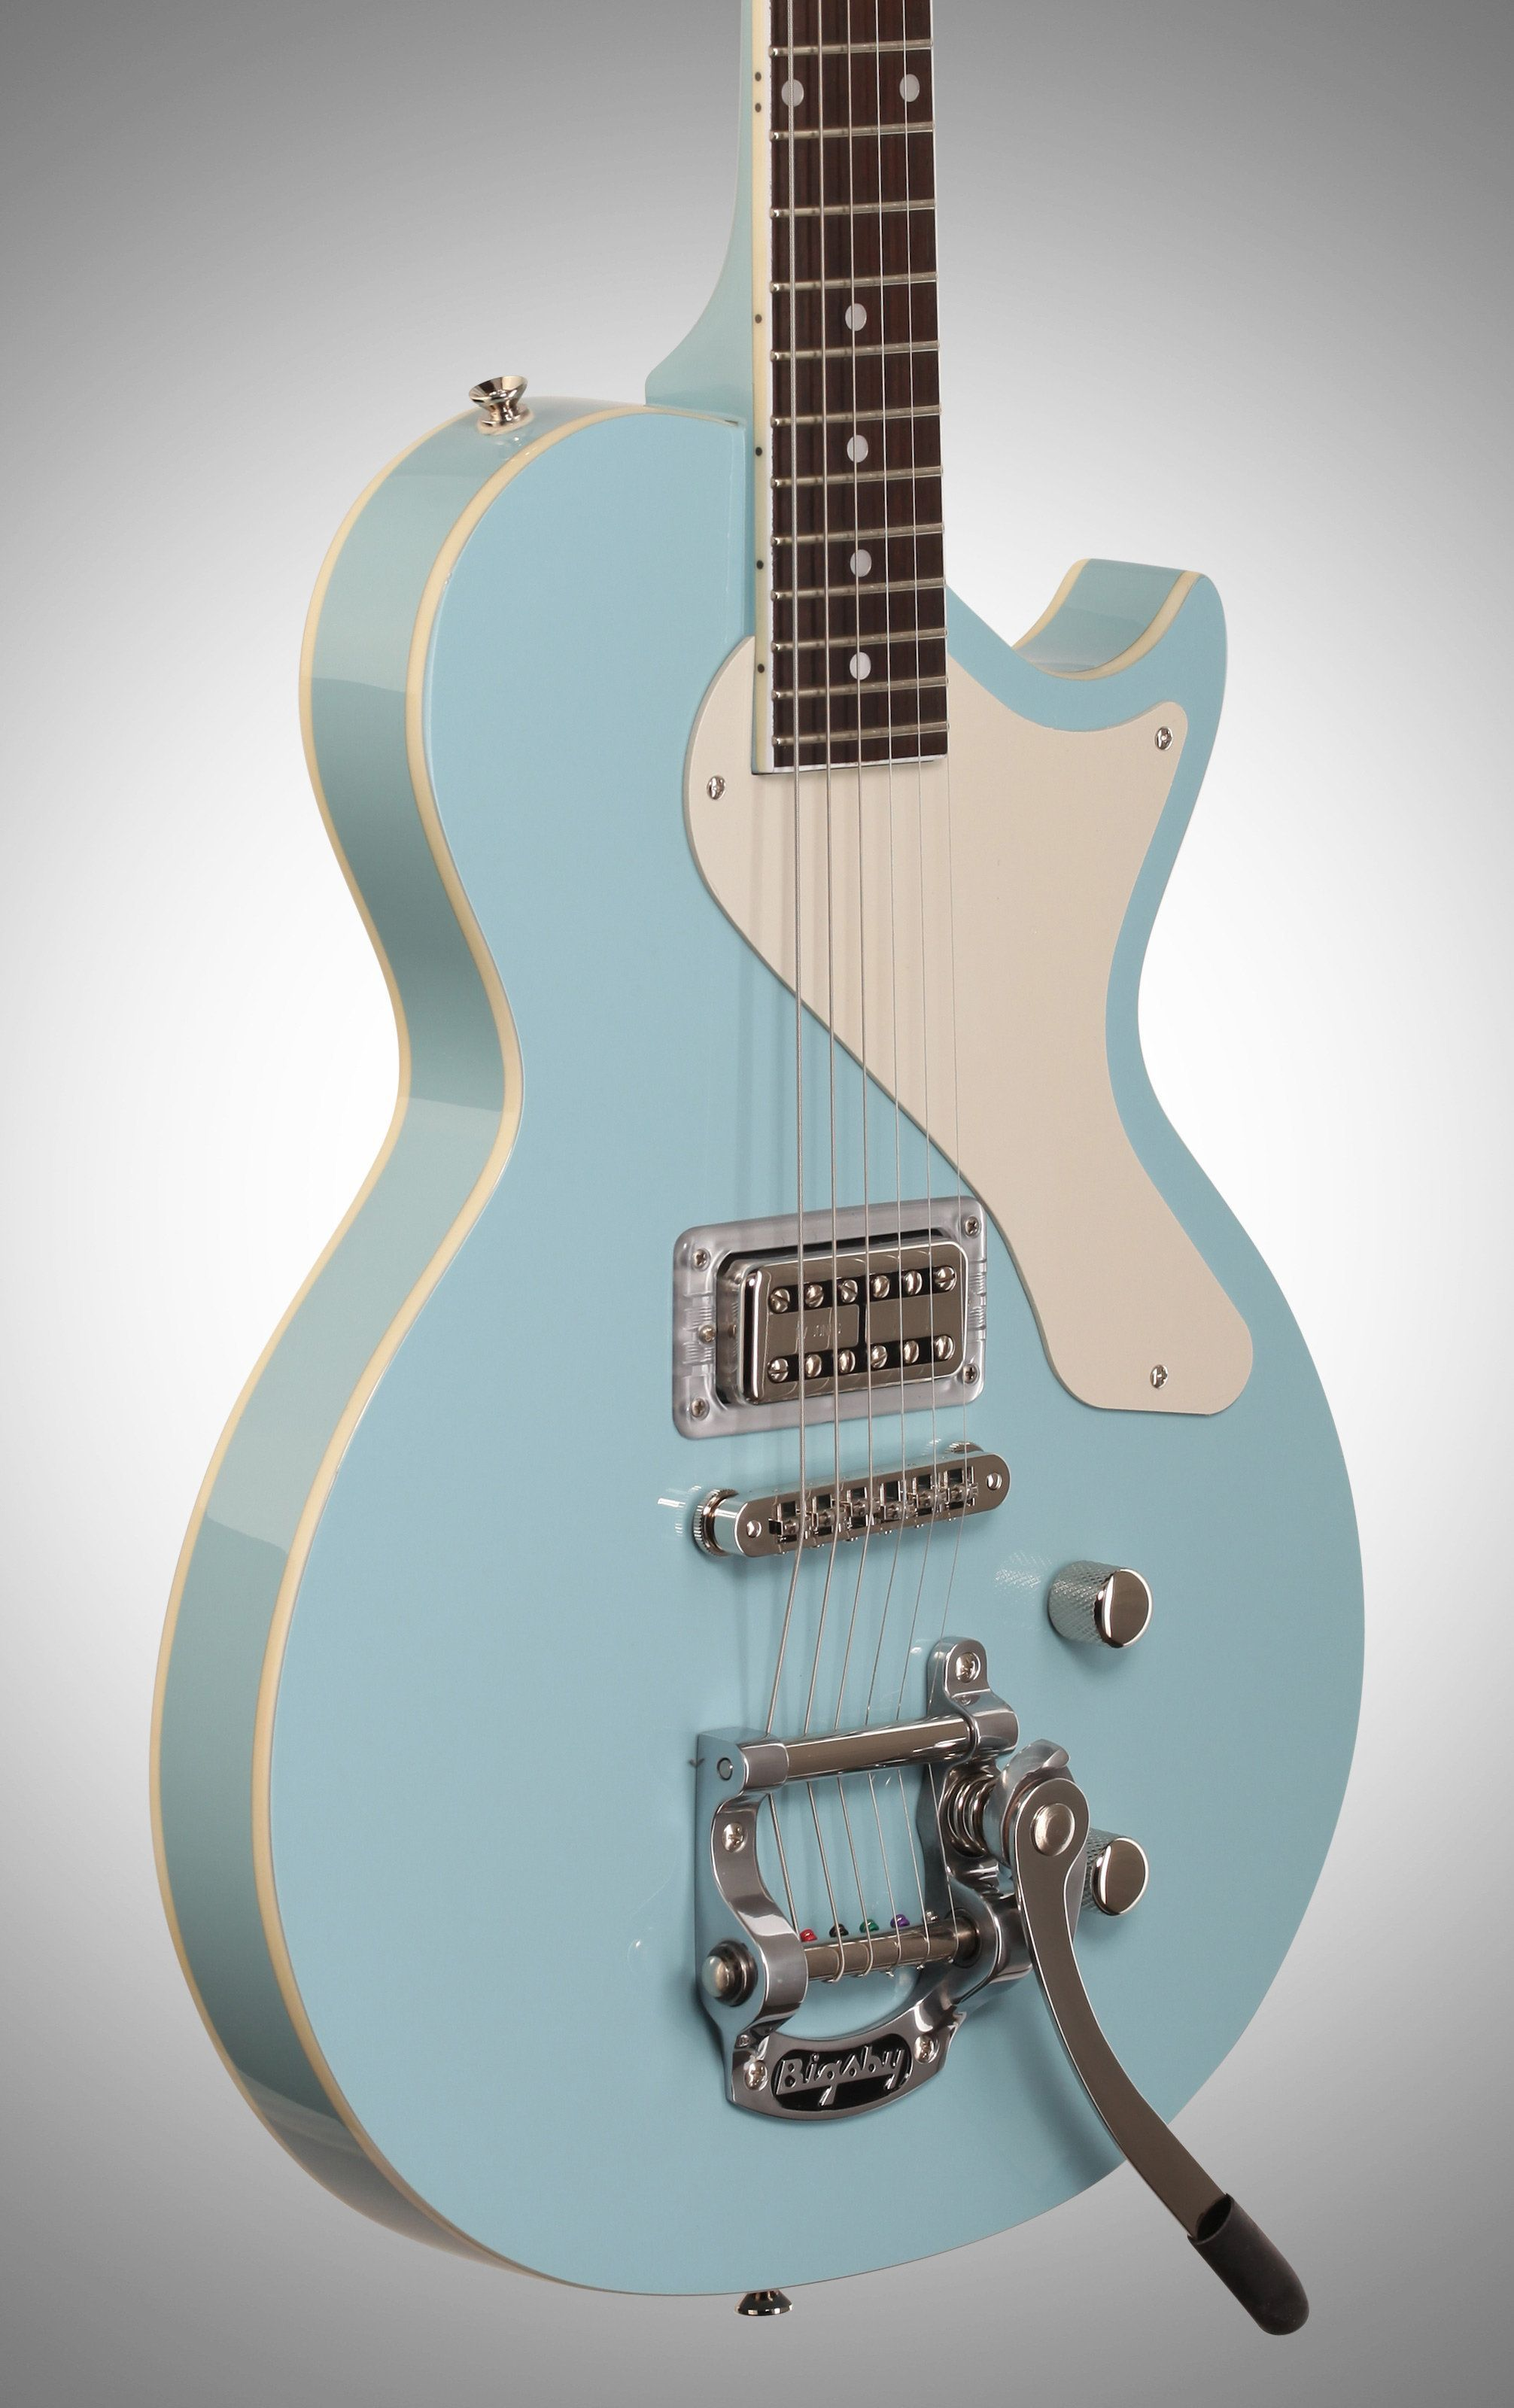 Axl Usa Bel Air Electric Guitar Light Blue Electric Guitar